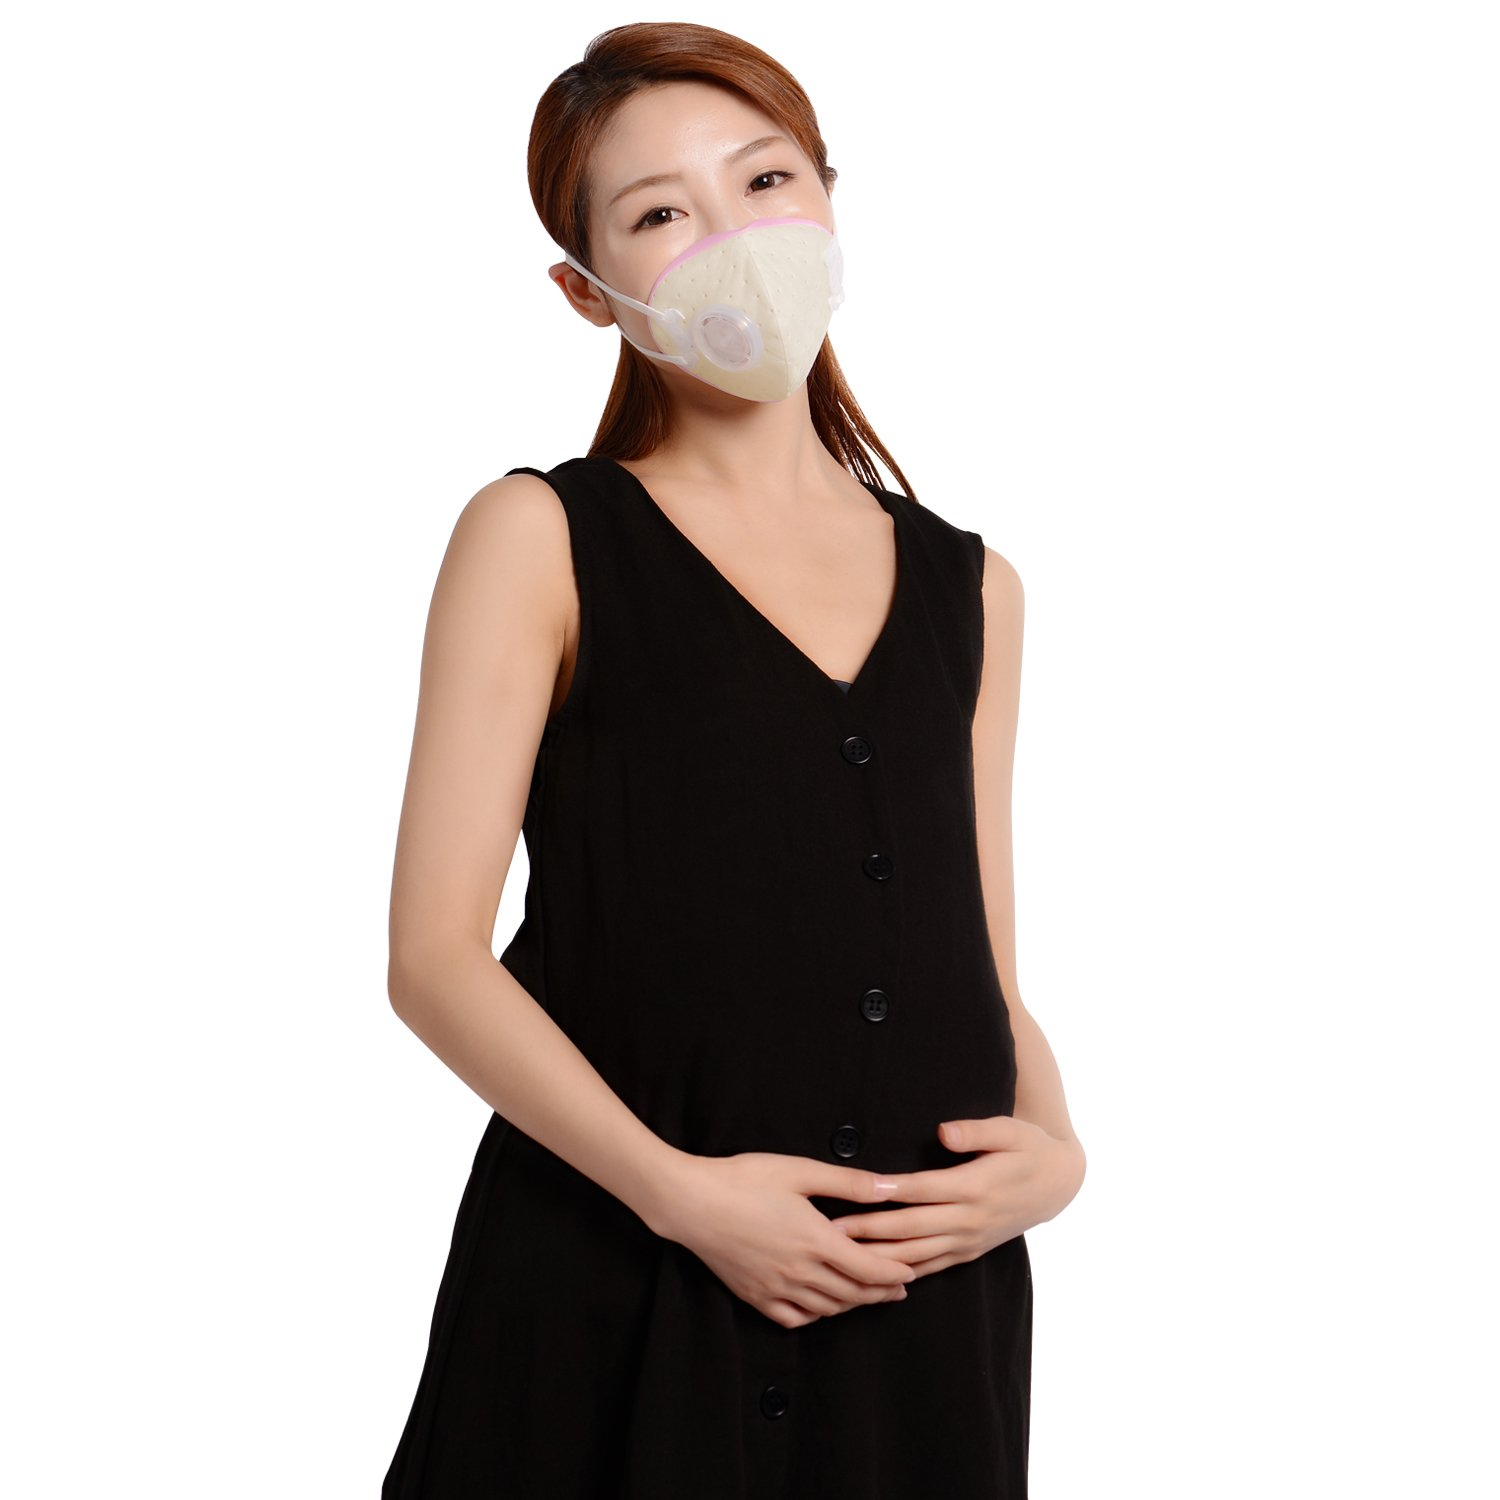 KANJEKANLE Breathable Face Masks Reduce Pollen,Dust,Dancer, Automobile Exhaust,Pet Hair,Particles,PM2.5 (Pregnant, Pink+Filter)